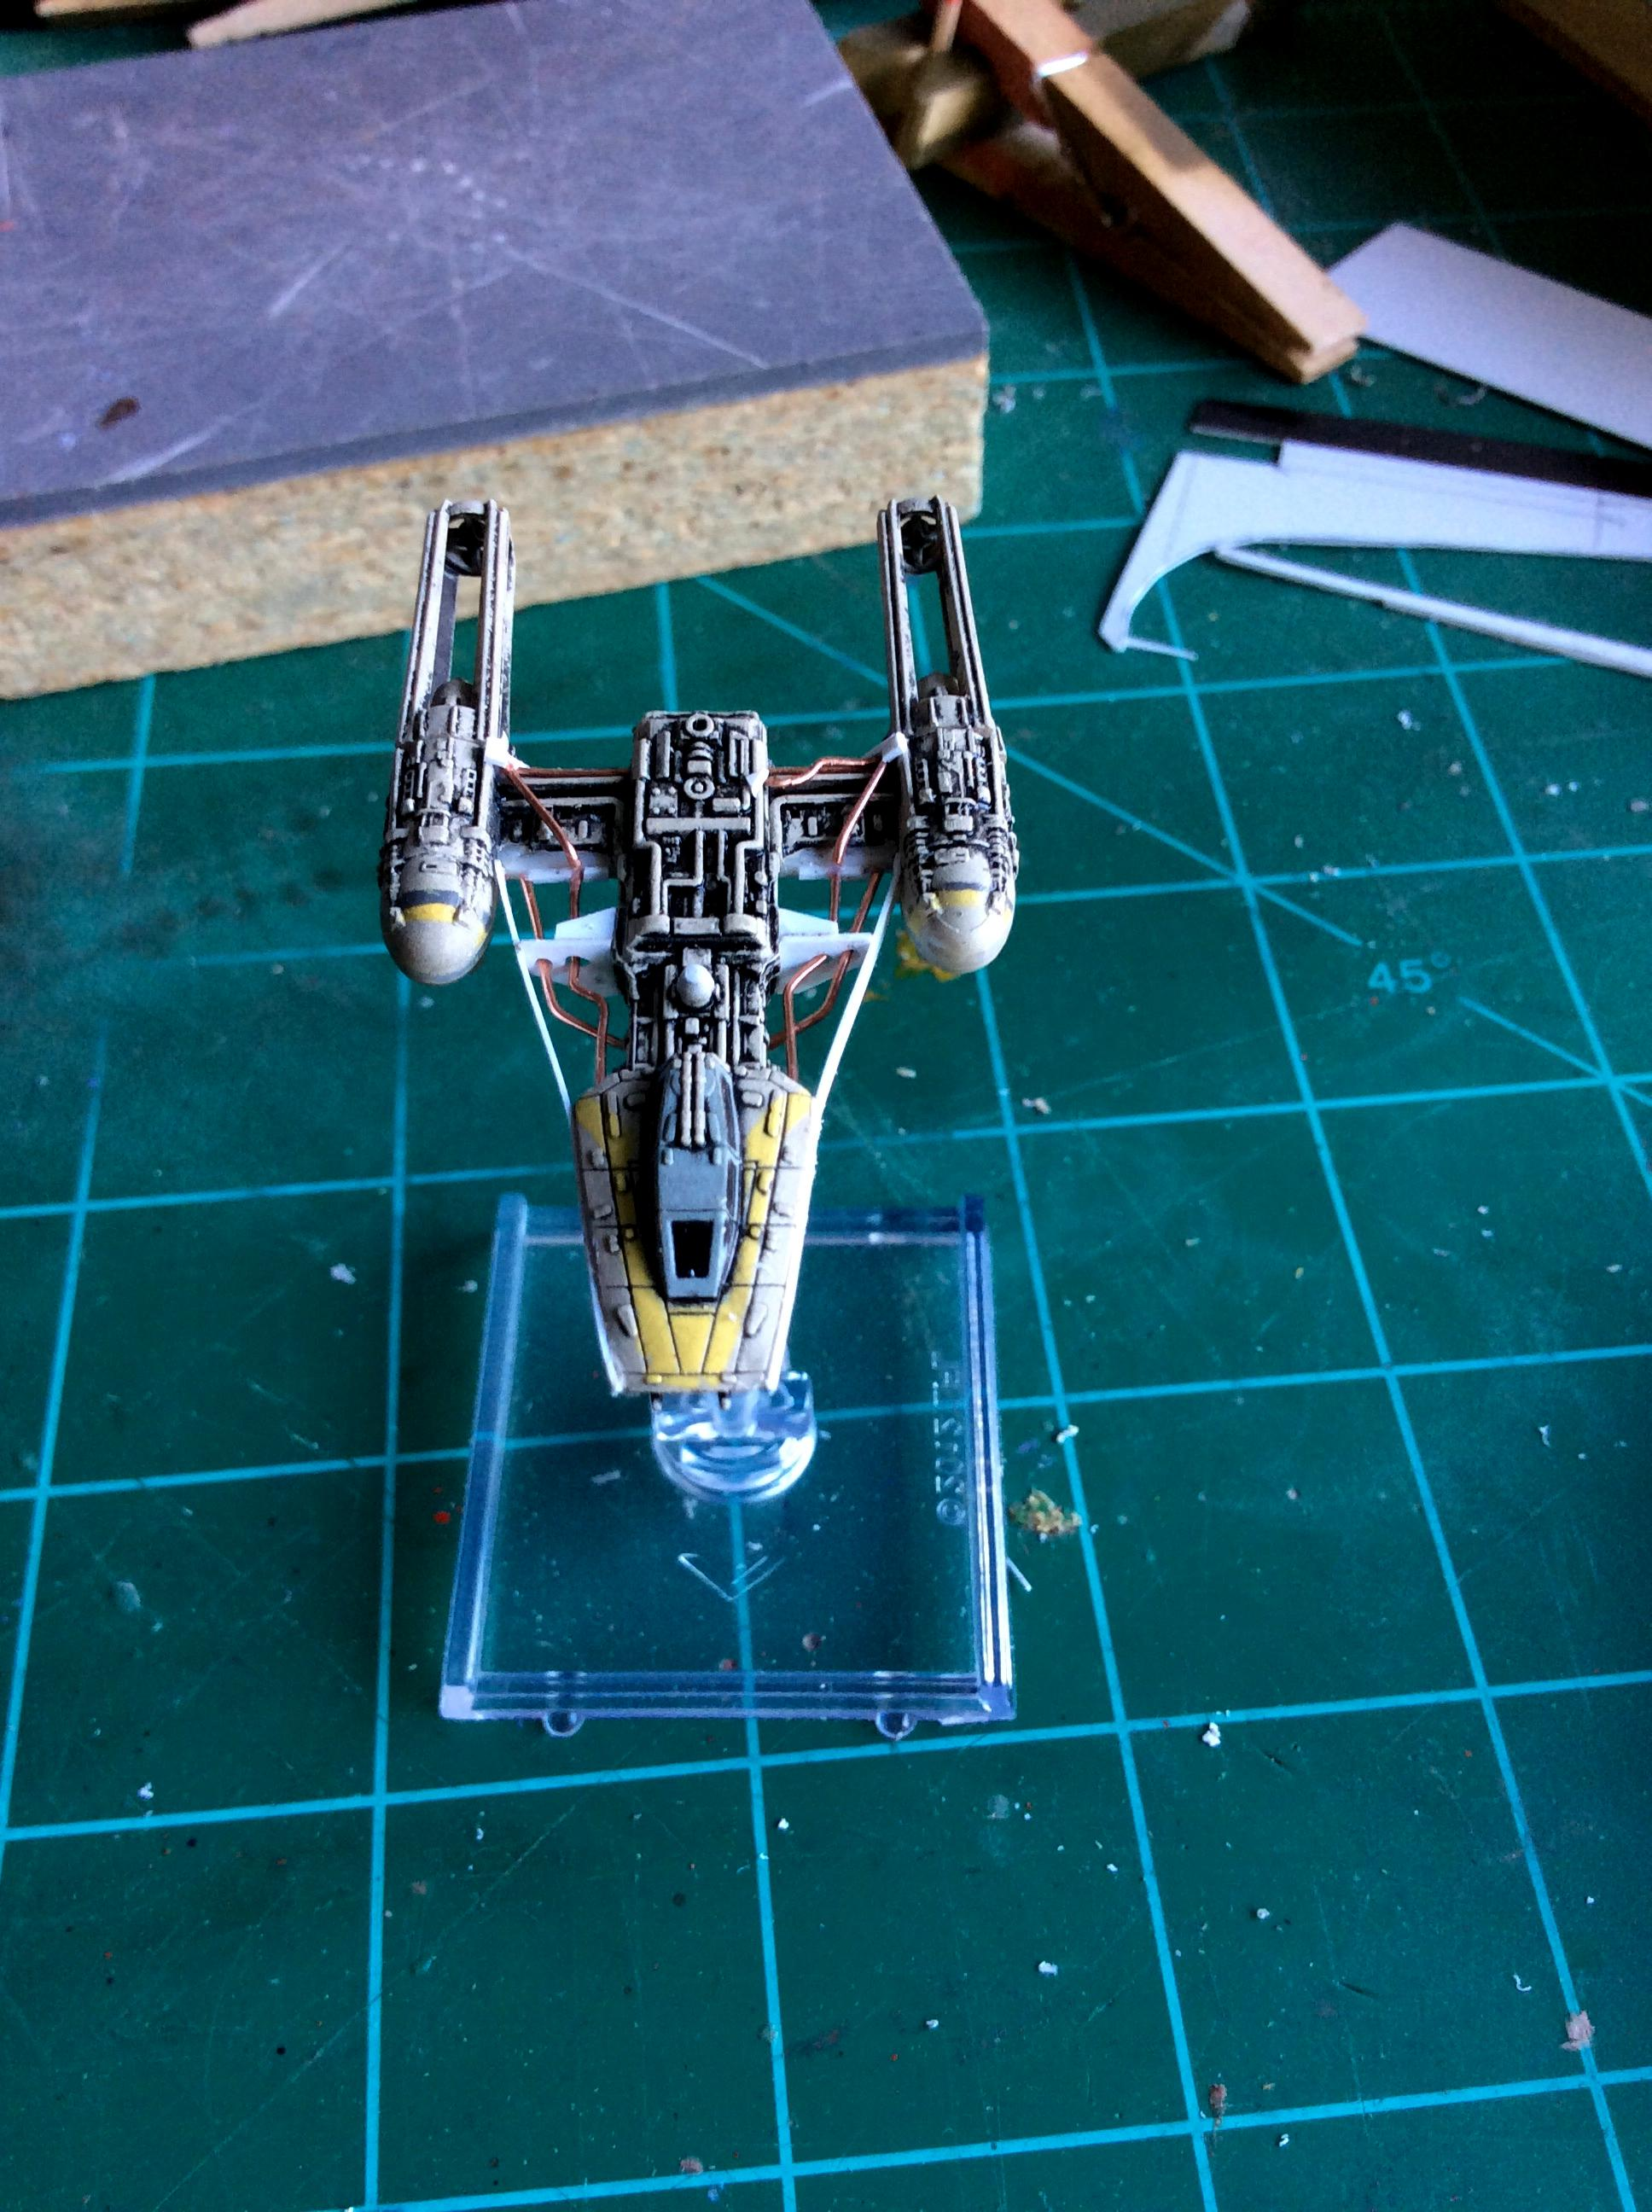 1:270, Jaffamaster, Miniatures Game, Star Wars, X-Wing, Y-wing